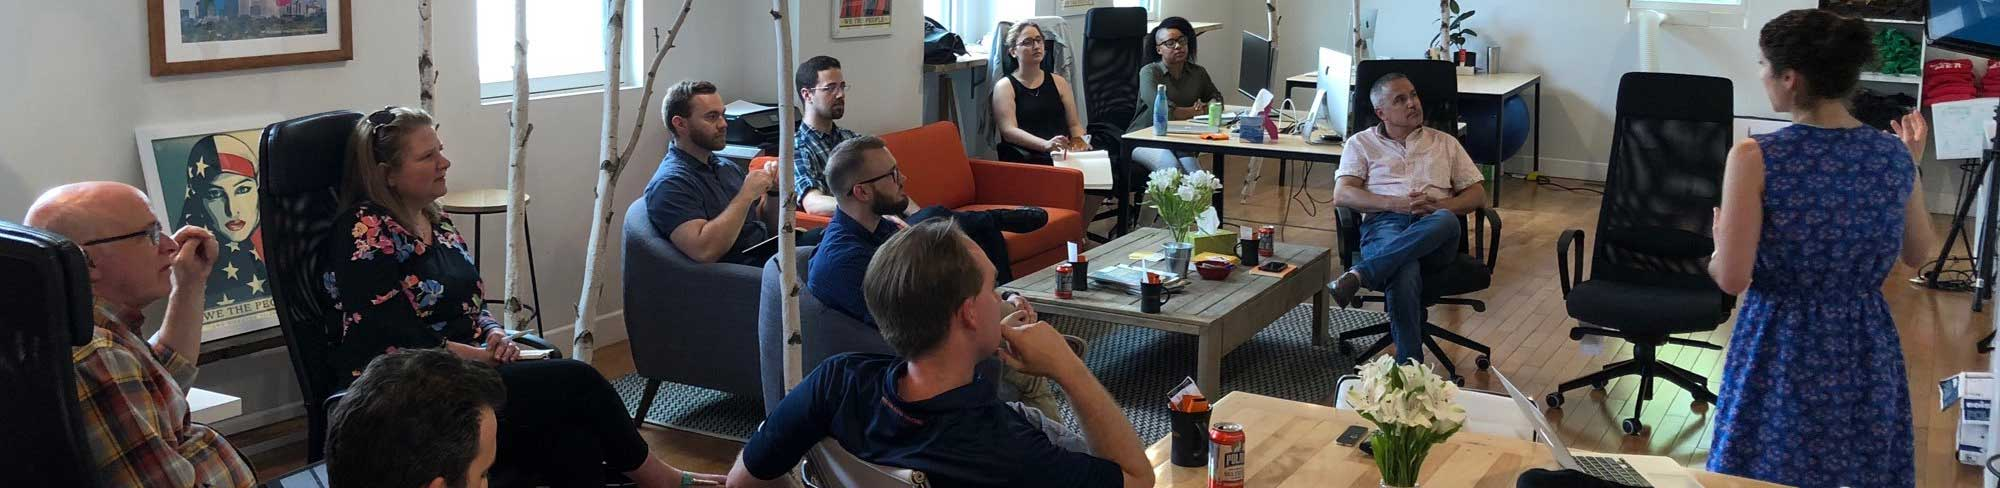 HubSpot User Group in Rochester, NY - Run by Josh Curcio of protocol 80